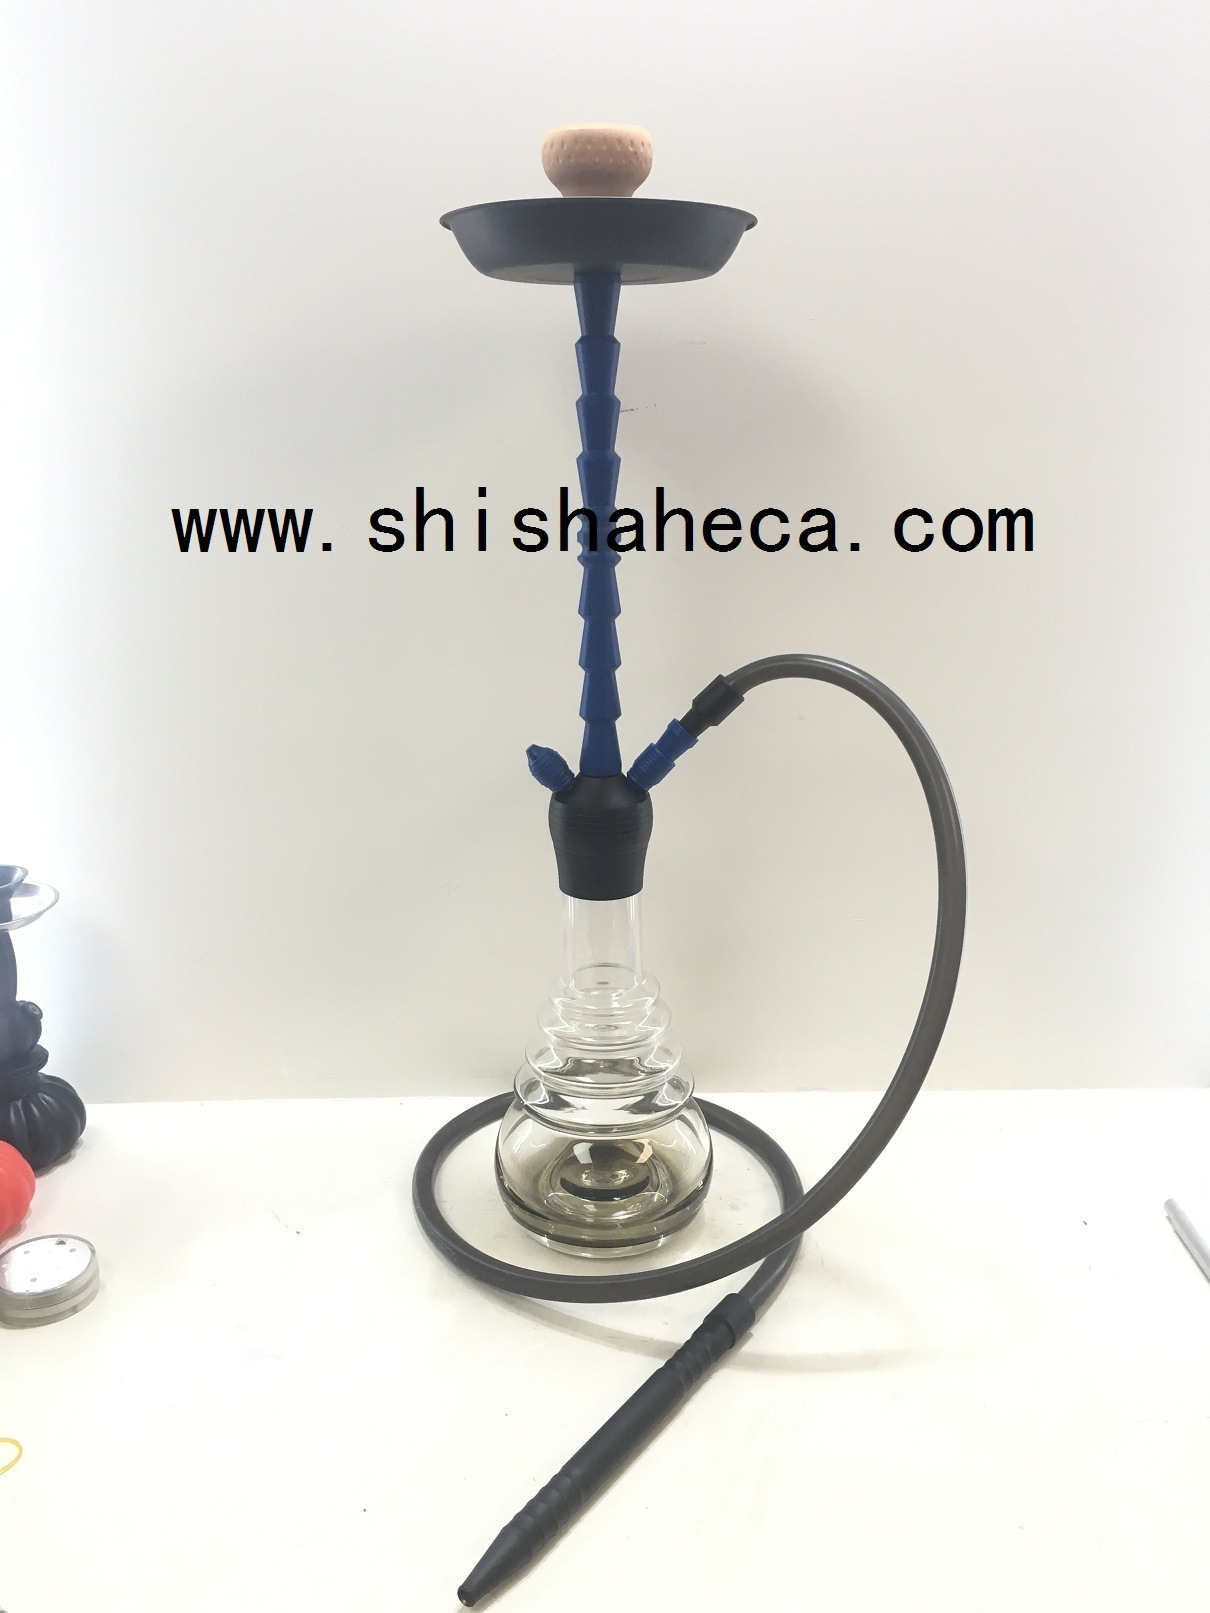 Wholesale High Quality Zinc Alloy Shisha Nargile Smoking Pipe Hookah